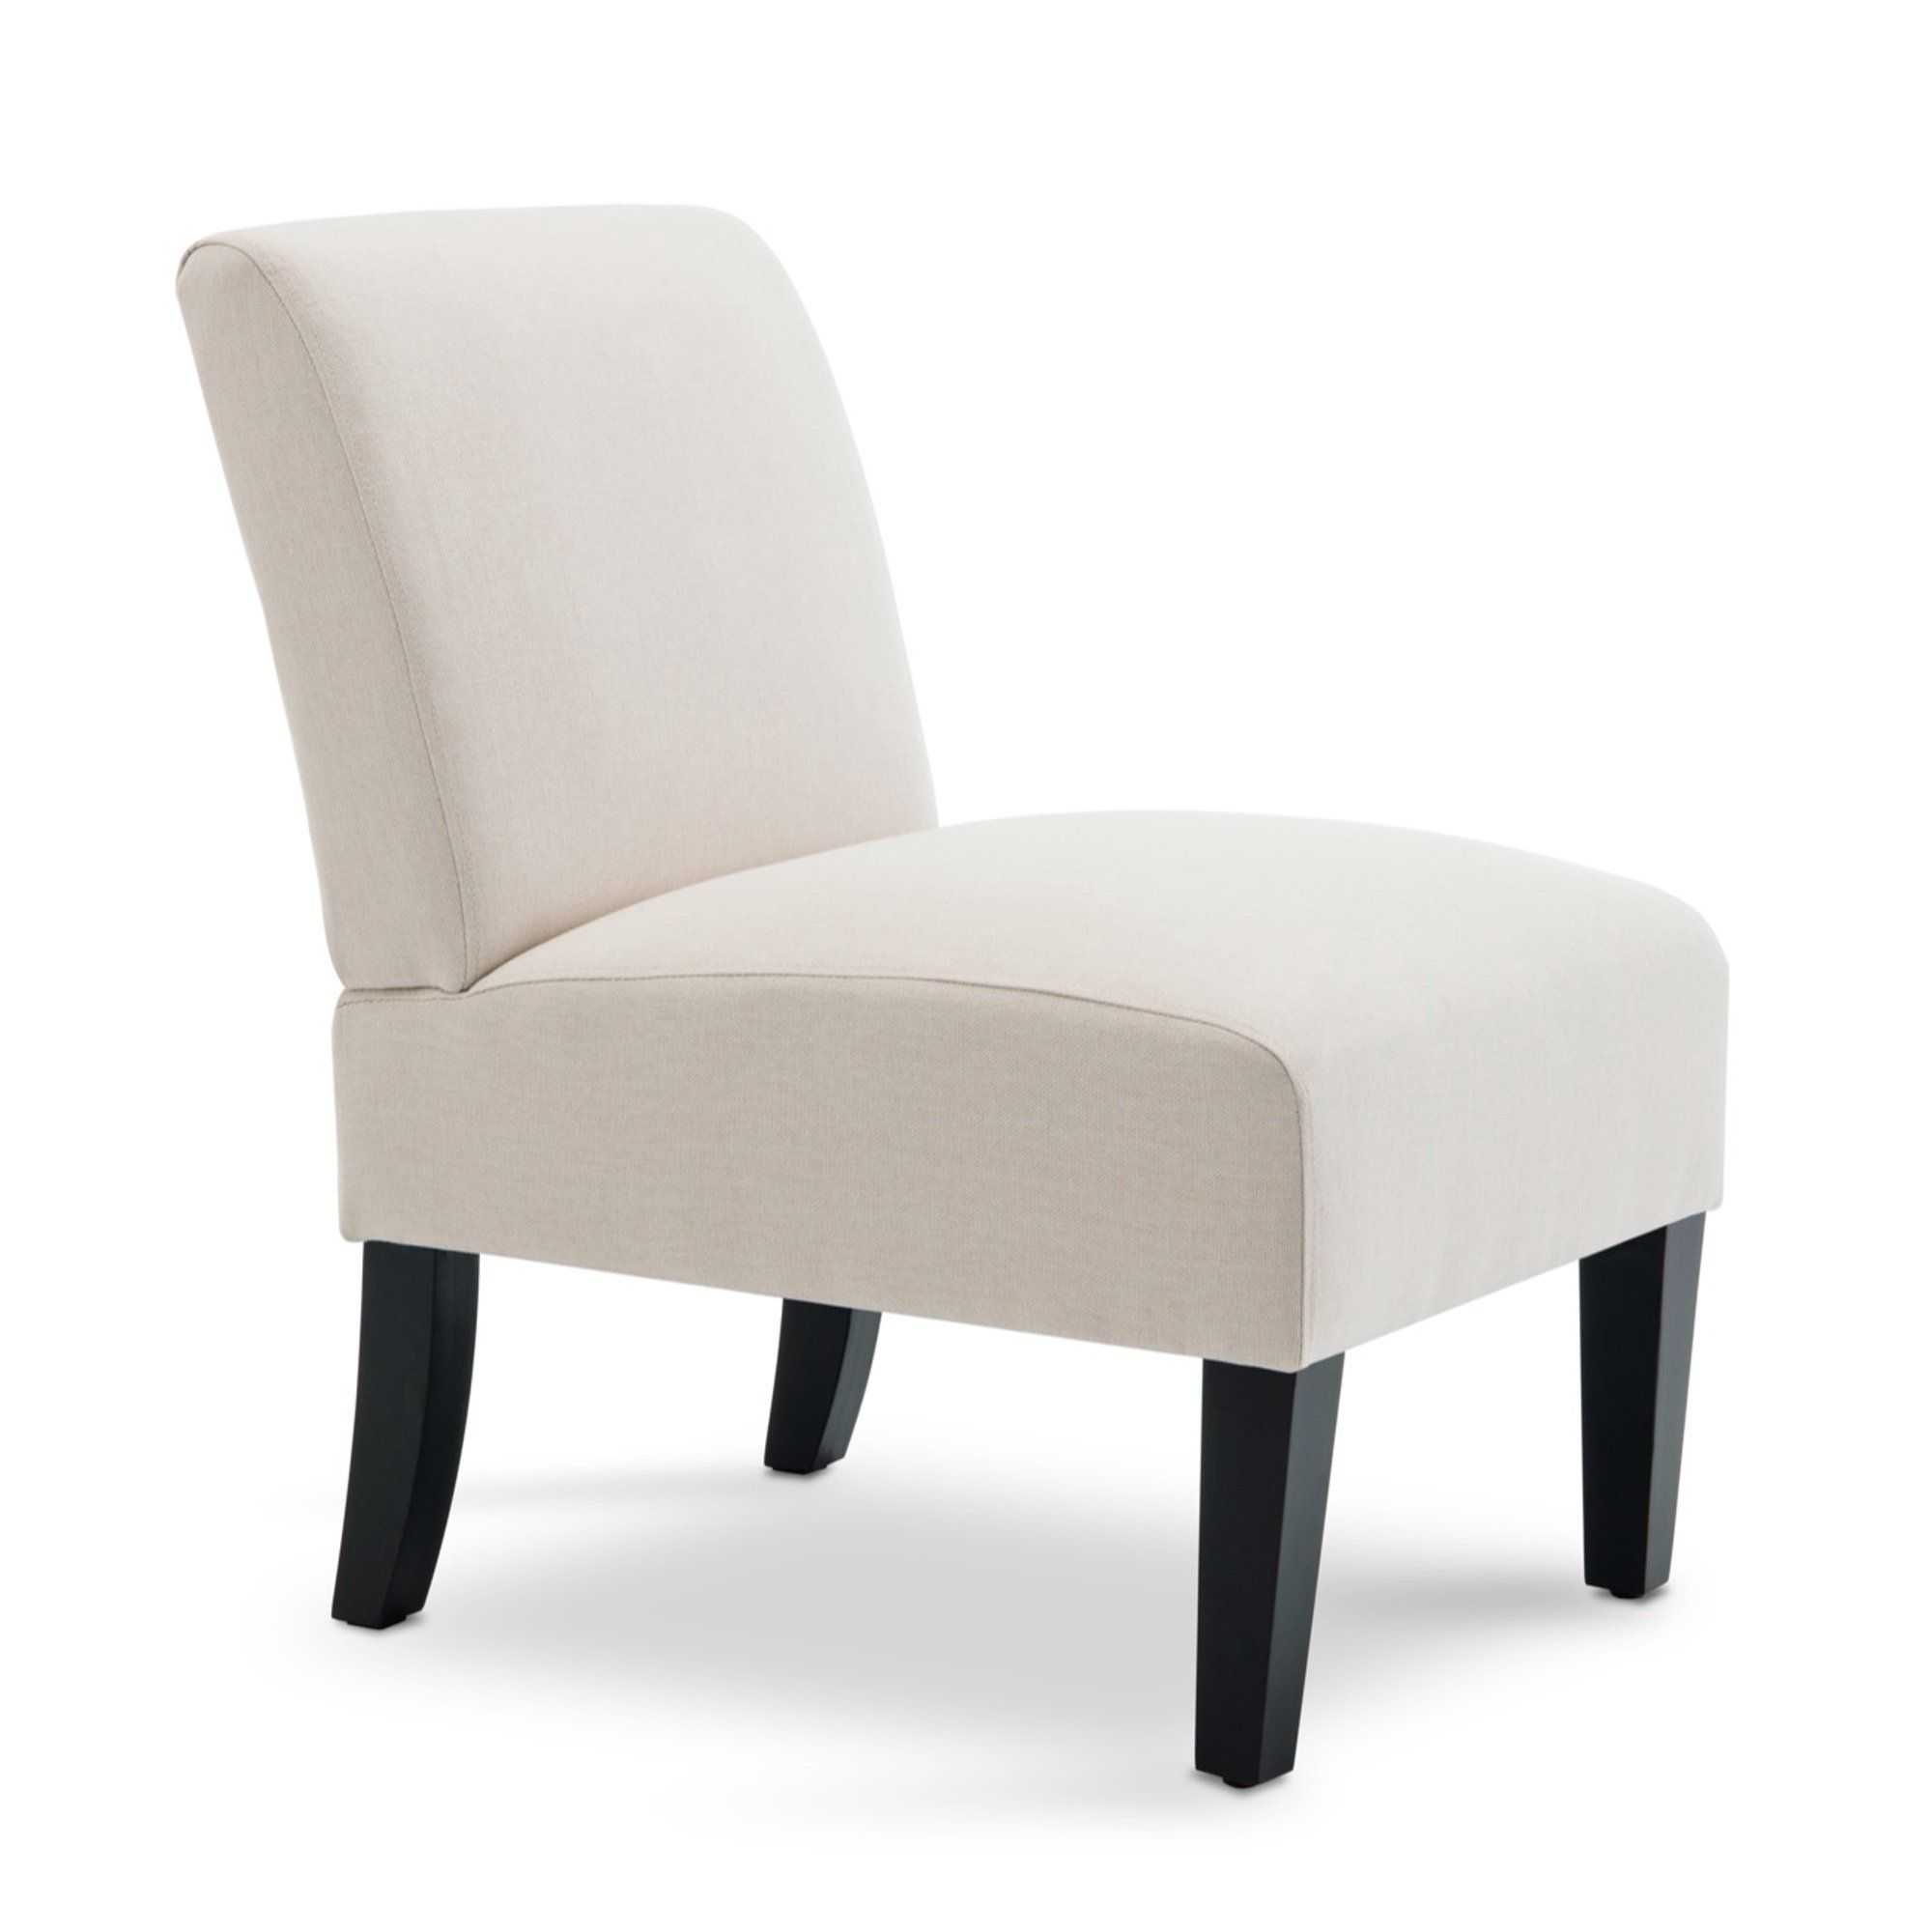 Belleze armless contemporary upholstered single curved